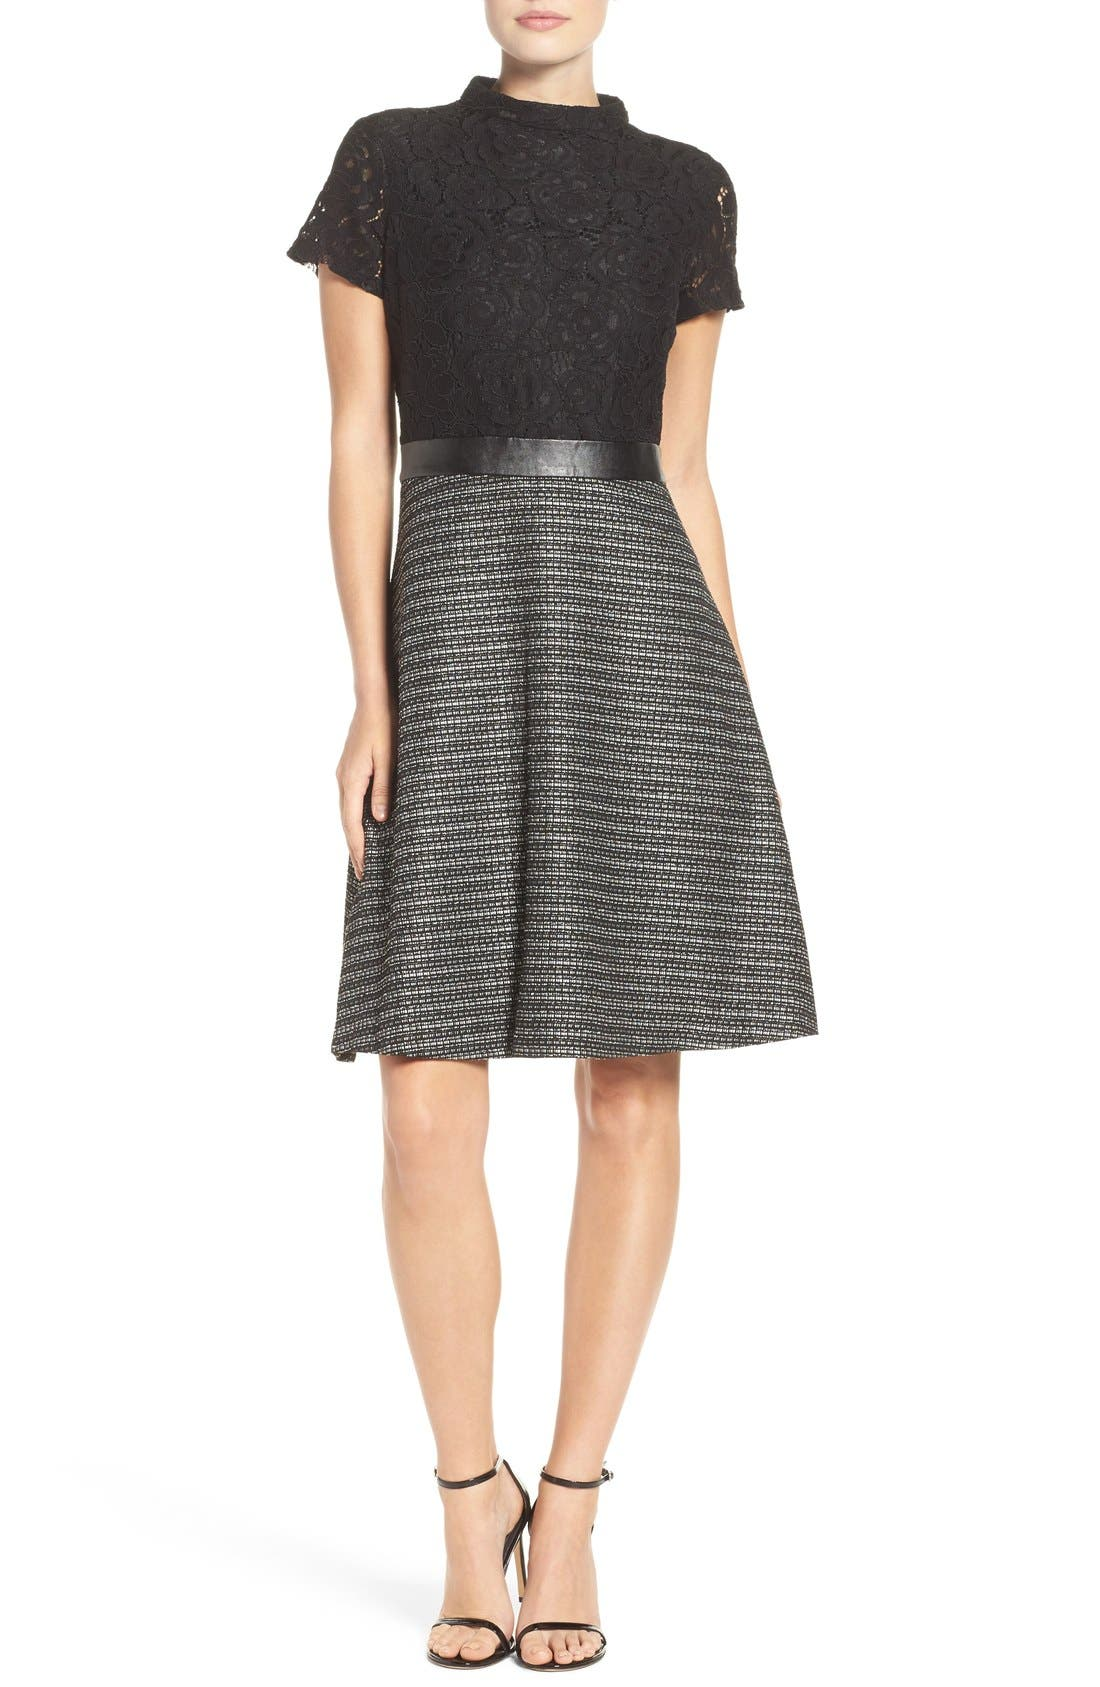 Alternate Image 1 Selected - Ellen Tracy Fit & Flare Dress (Regular & Petite)